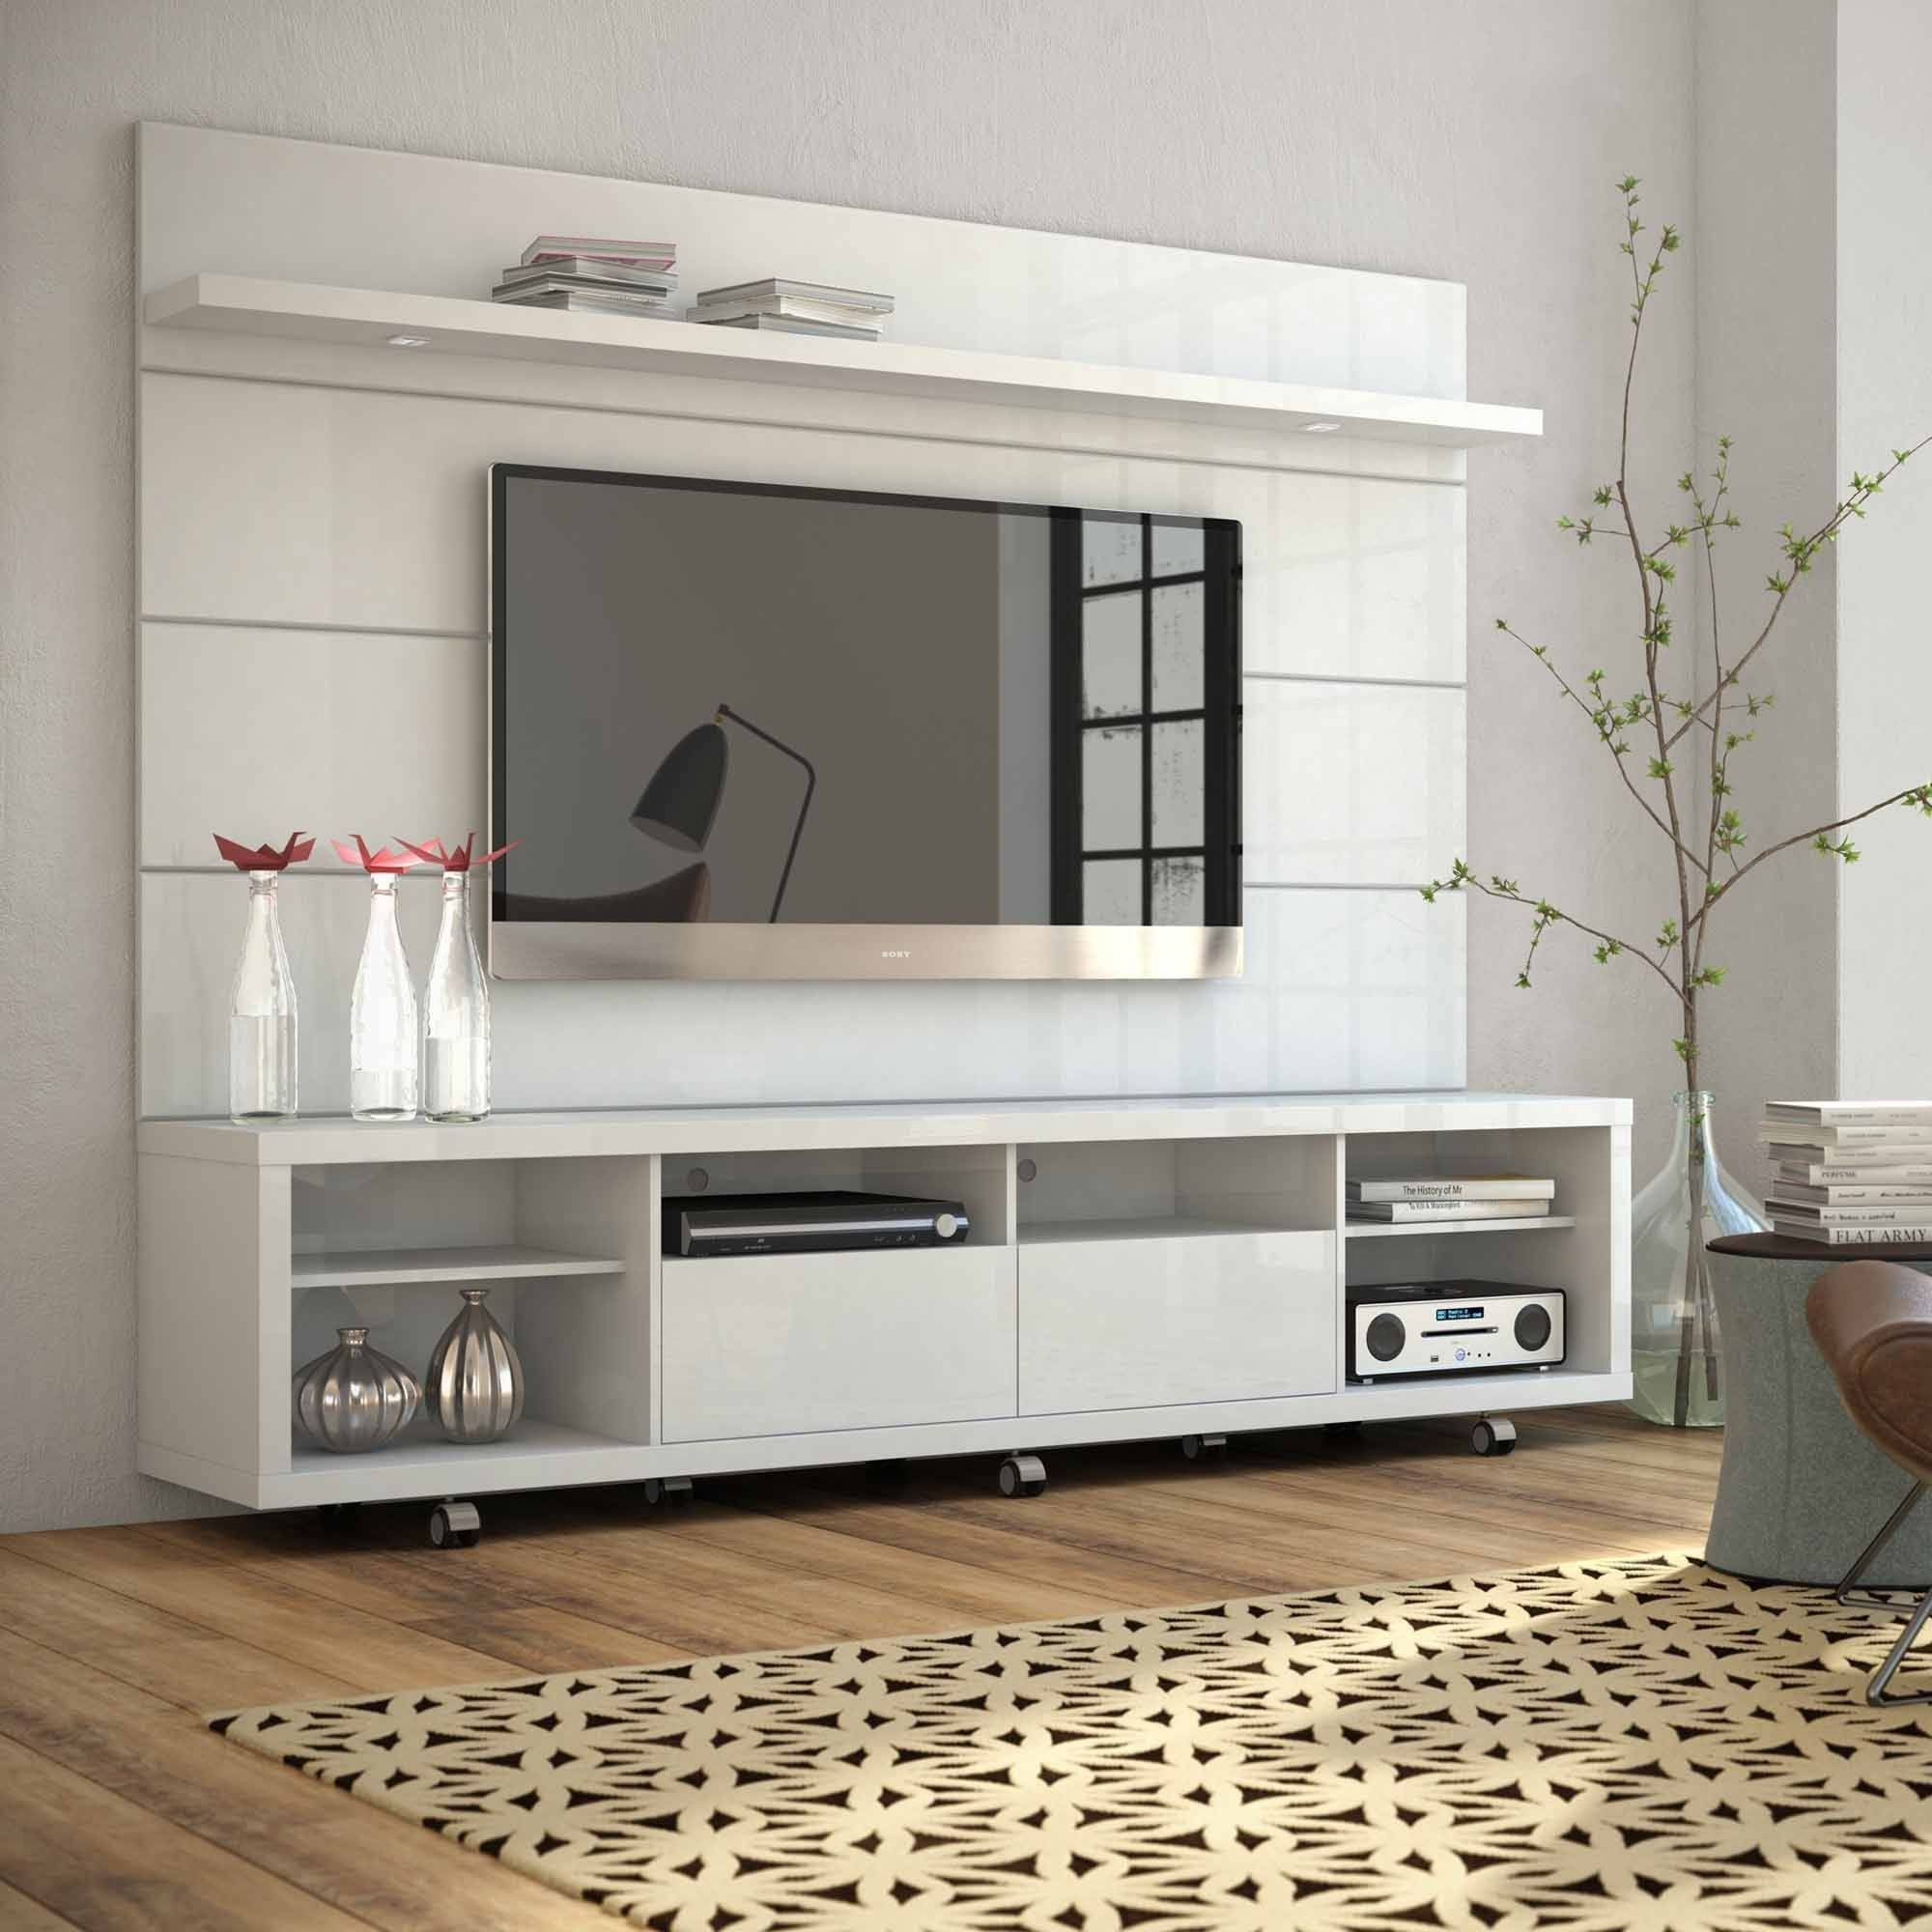 Manhattan Comfort Cabrini Tv Stand And Floating Wall Panel With Led Lights 2 For